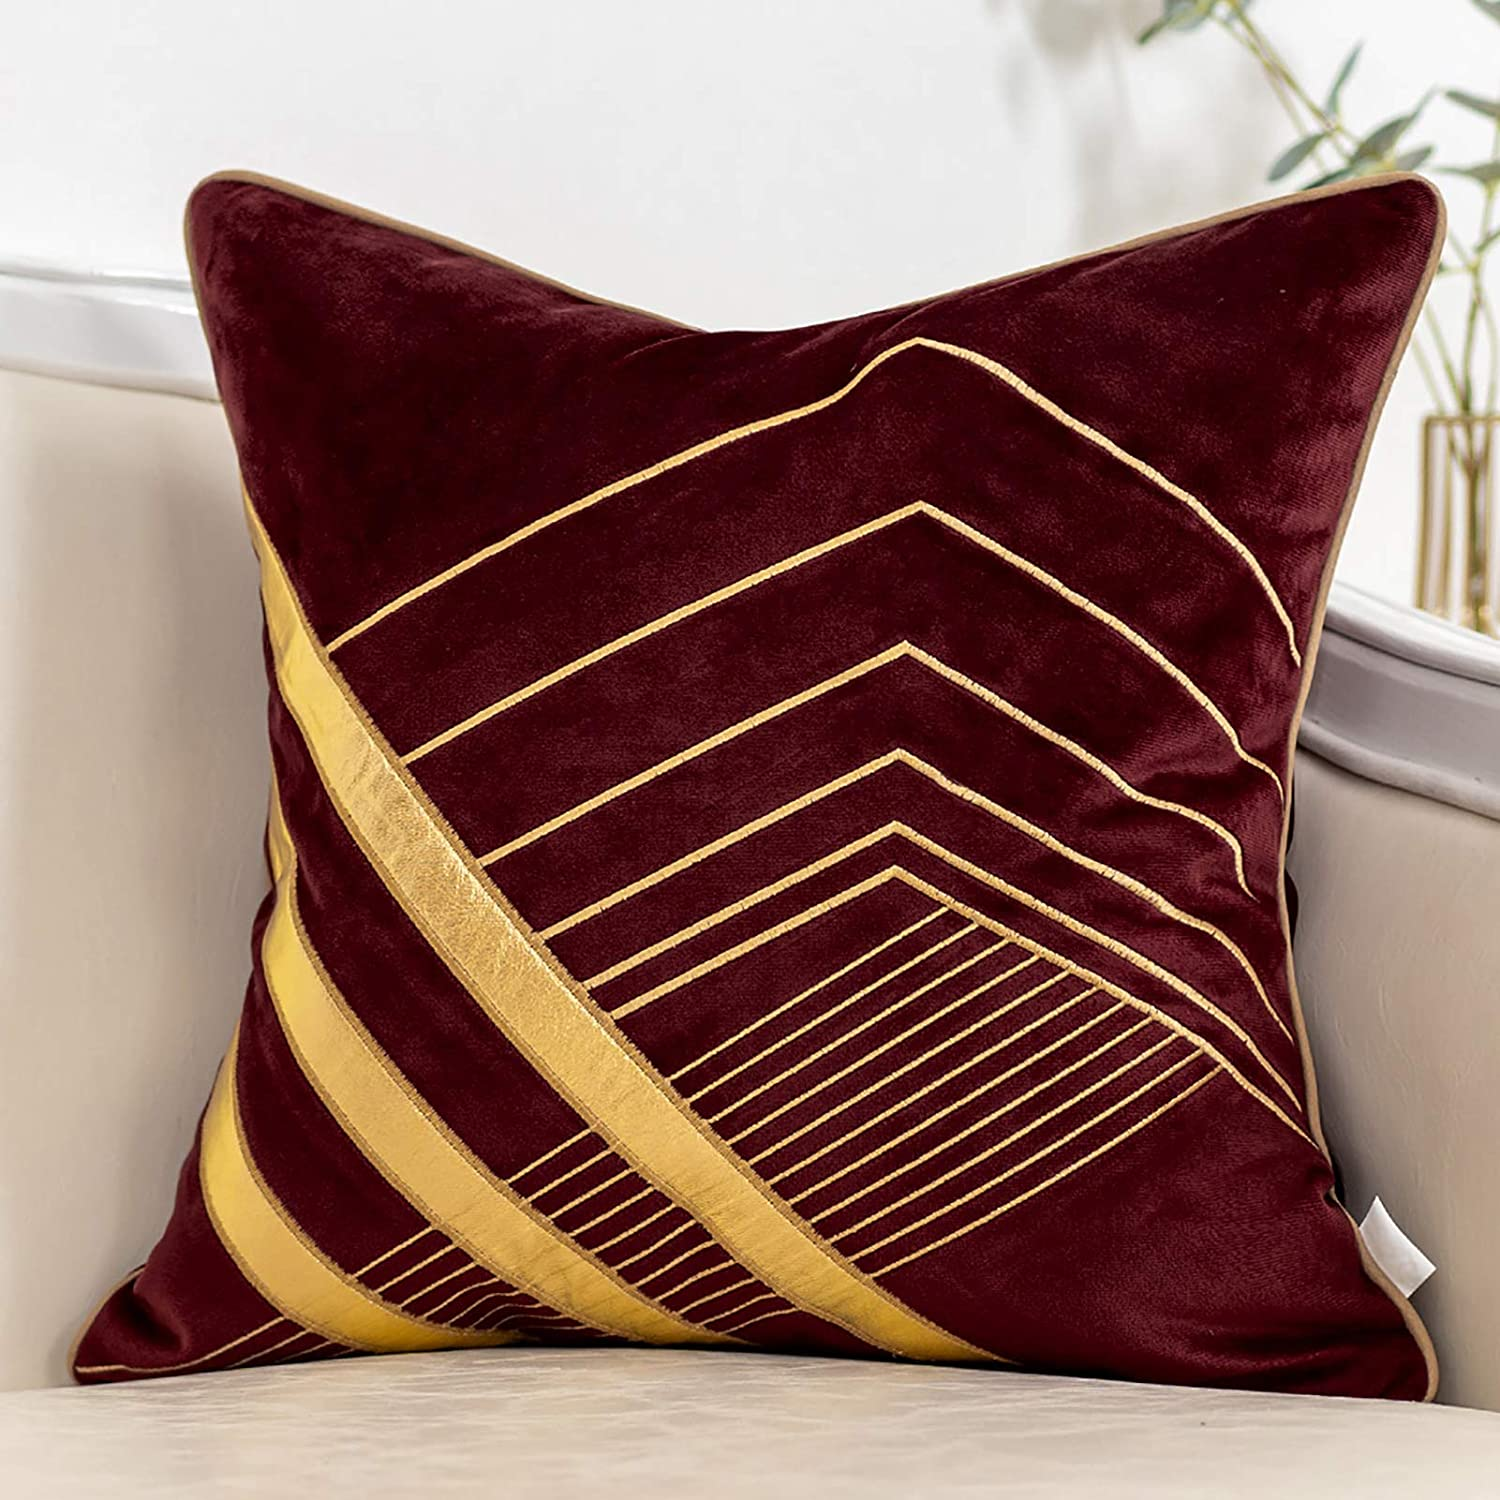 Yangest Wine Red and Gold Geometric Velvet Throw Pillow Cover Striped Leather Cushion Case Modern Luxury Textured Pillowcase for Sofa Couch Bedroom Living Room Home Decor, 18x18 Inch